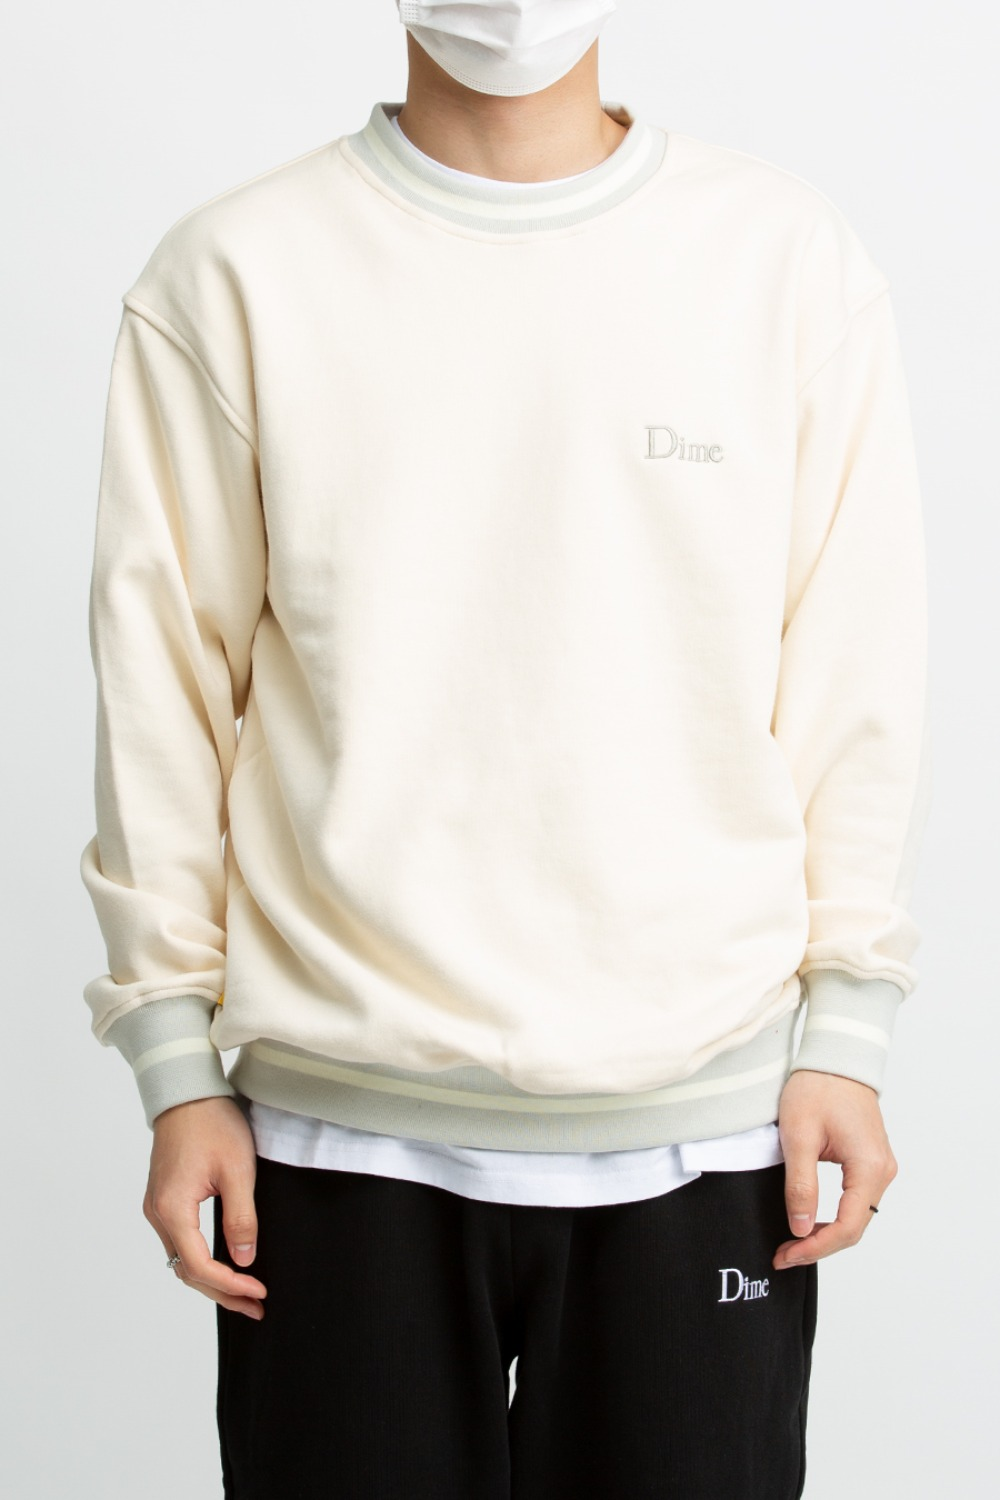 DIME CLASSIC FRENCH TERRY CREWNECK CREAM